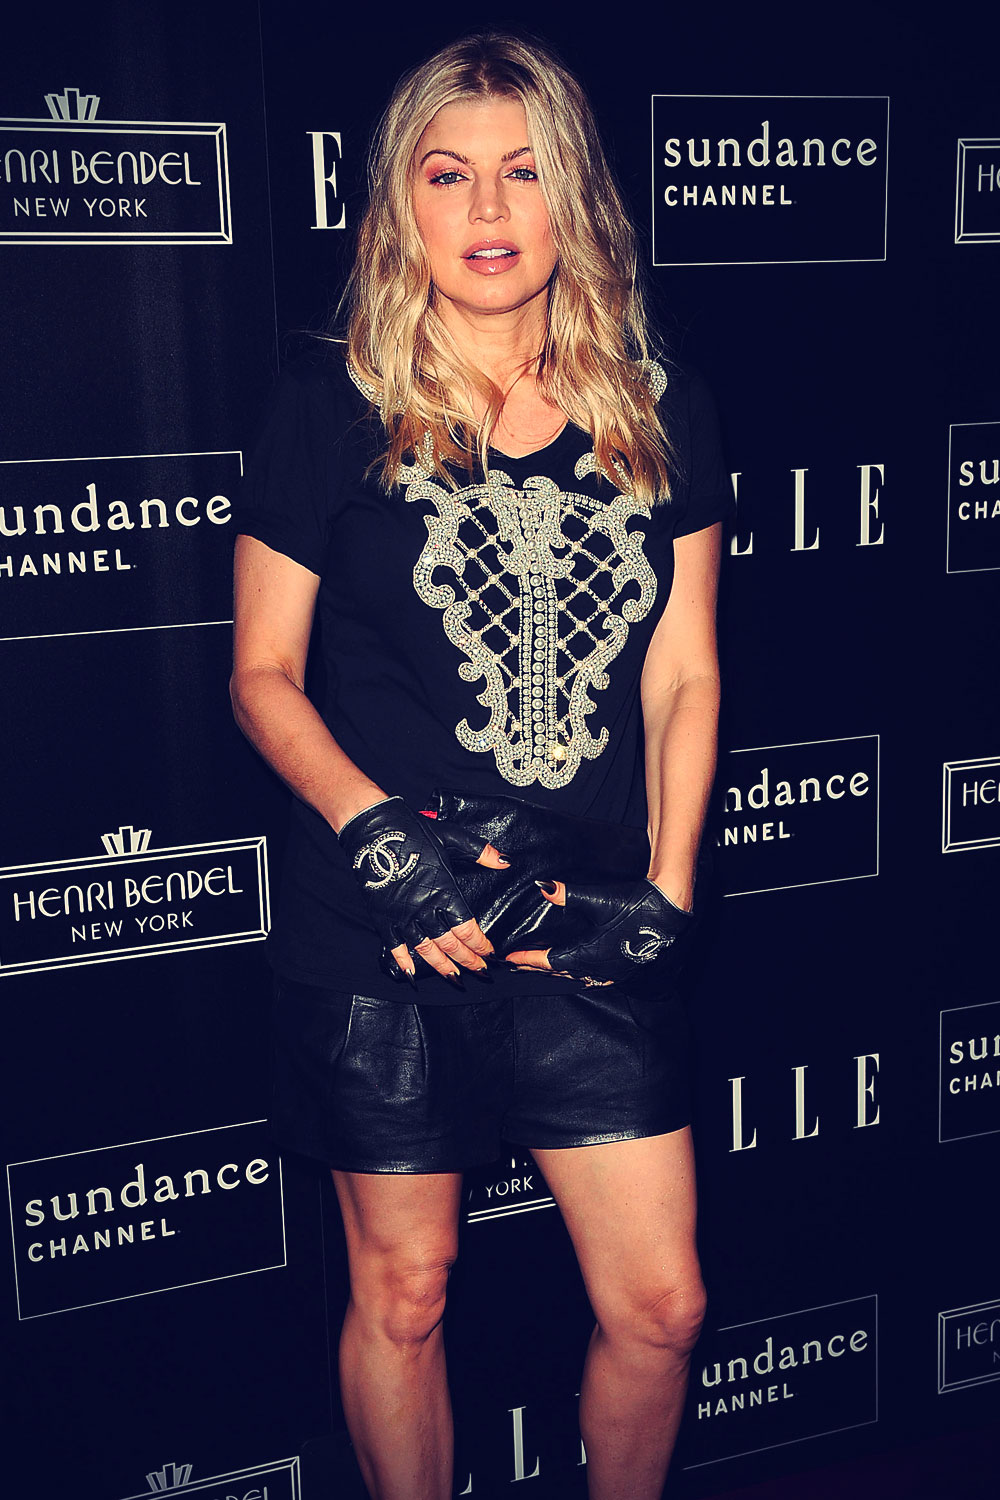 Fergie at ELLE & Sundance Channel